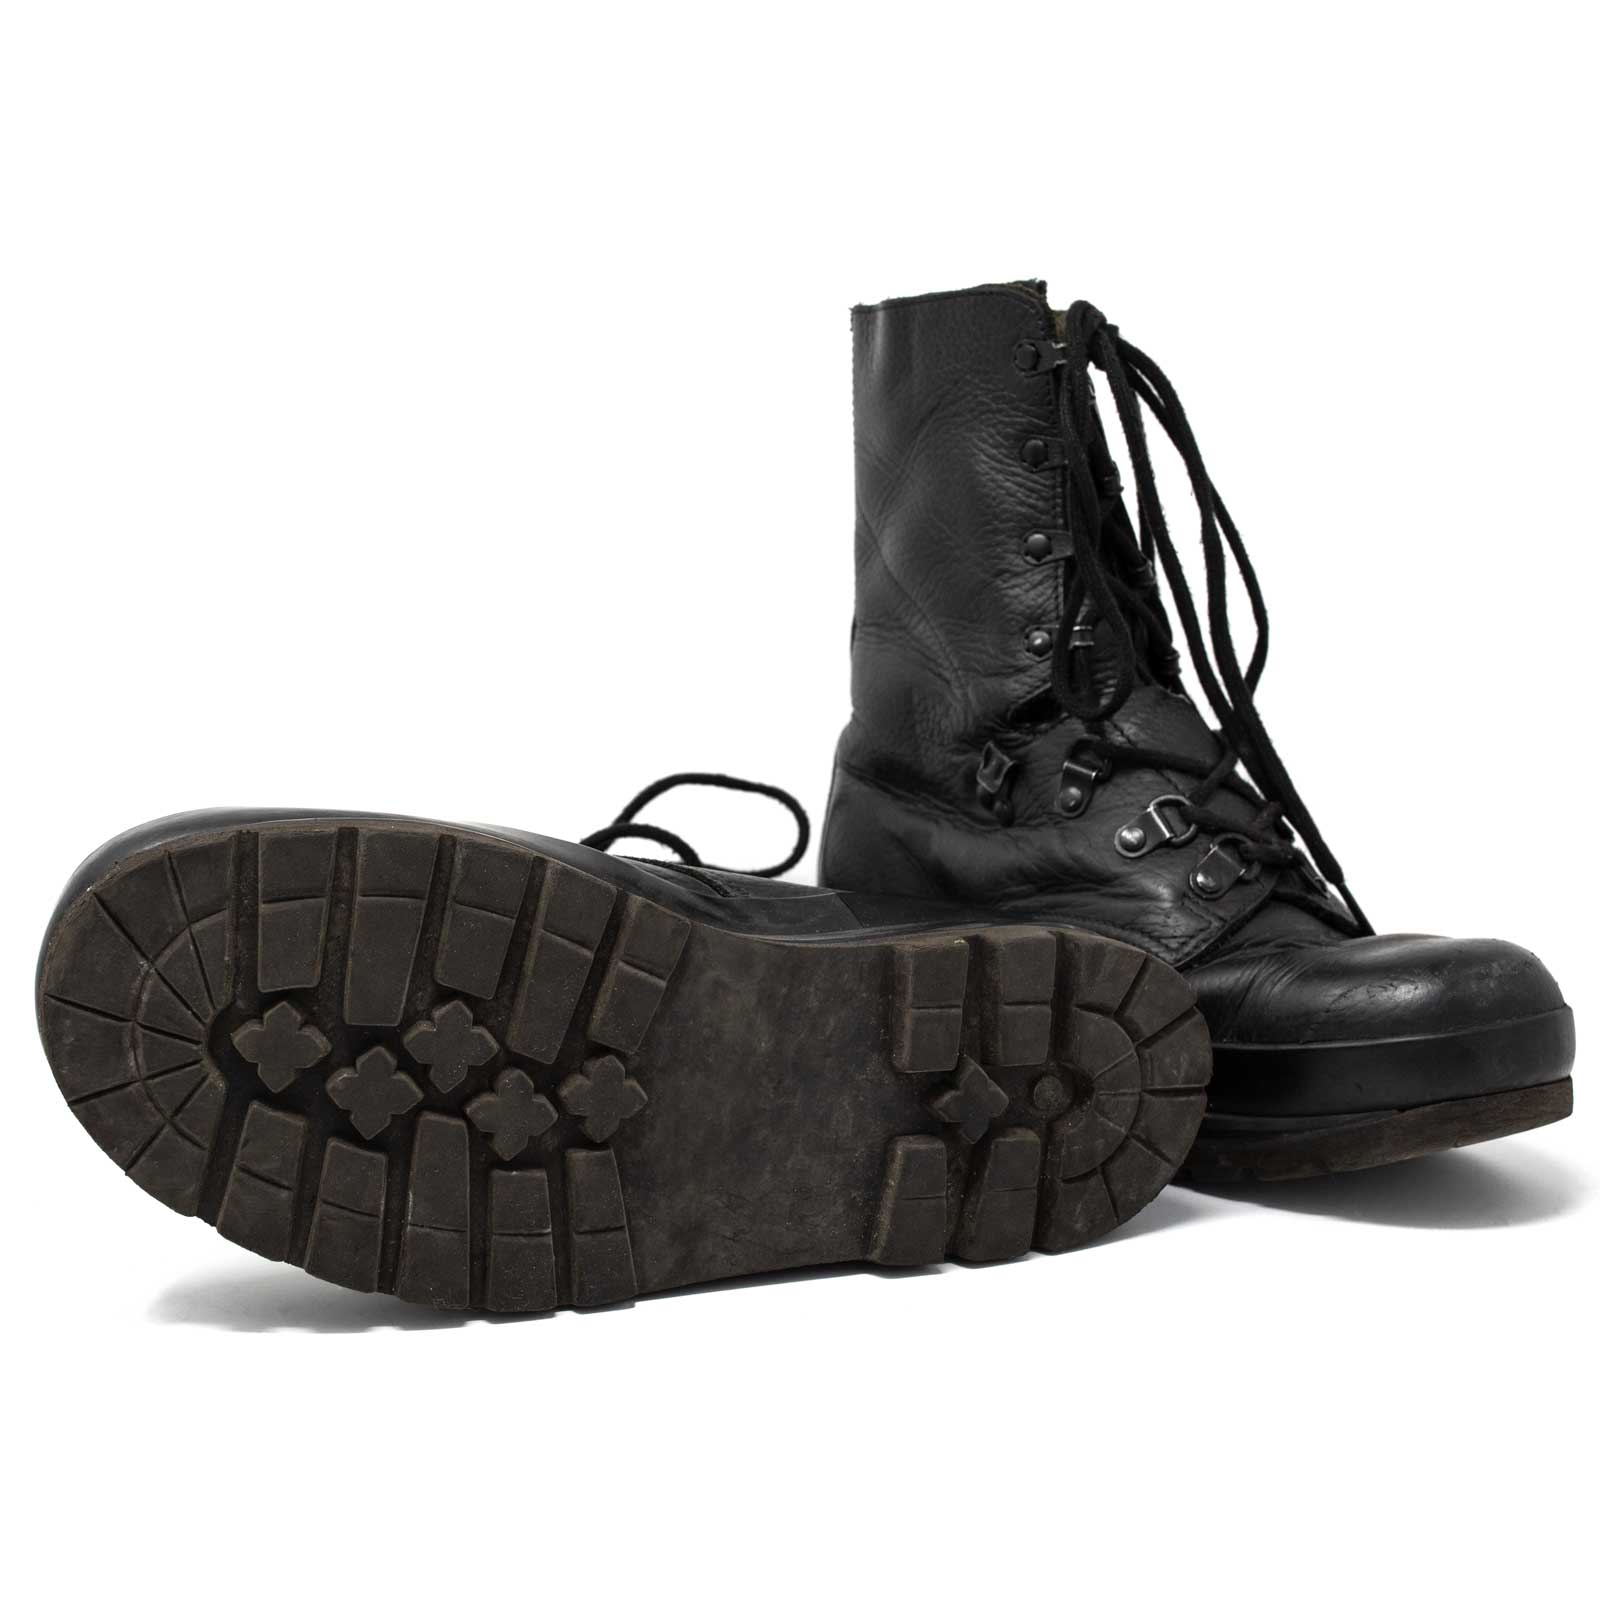 The Ultimate Combat Boot